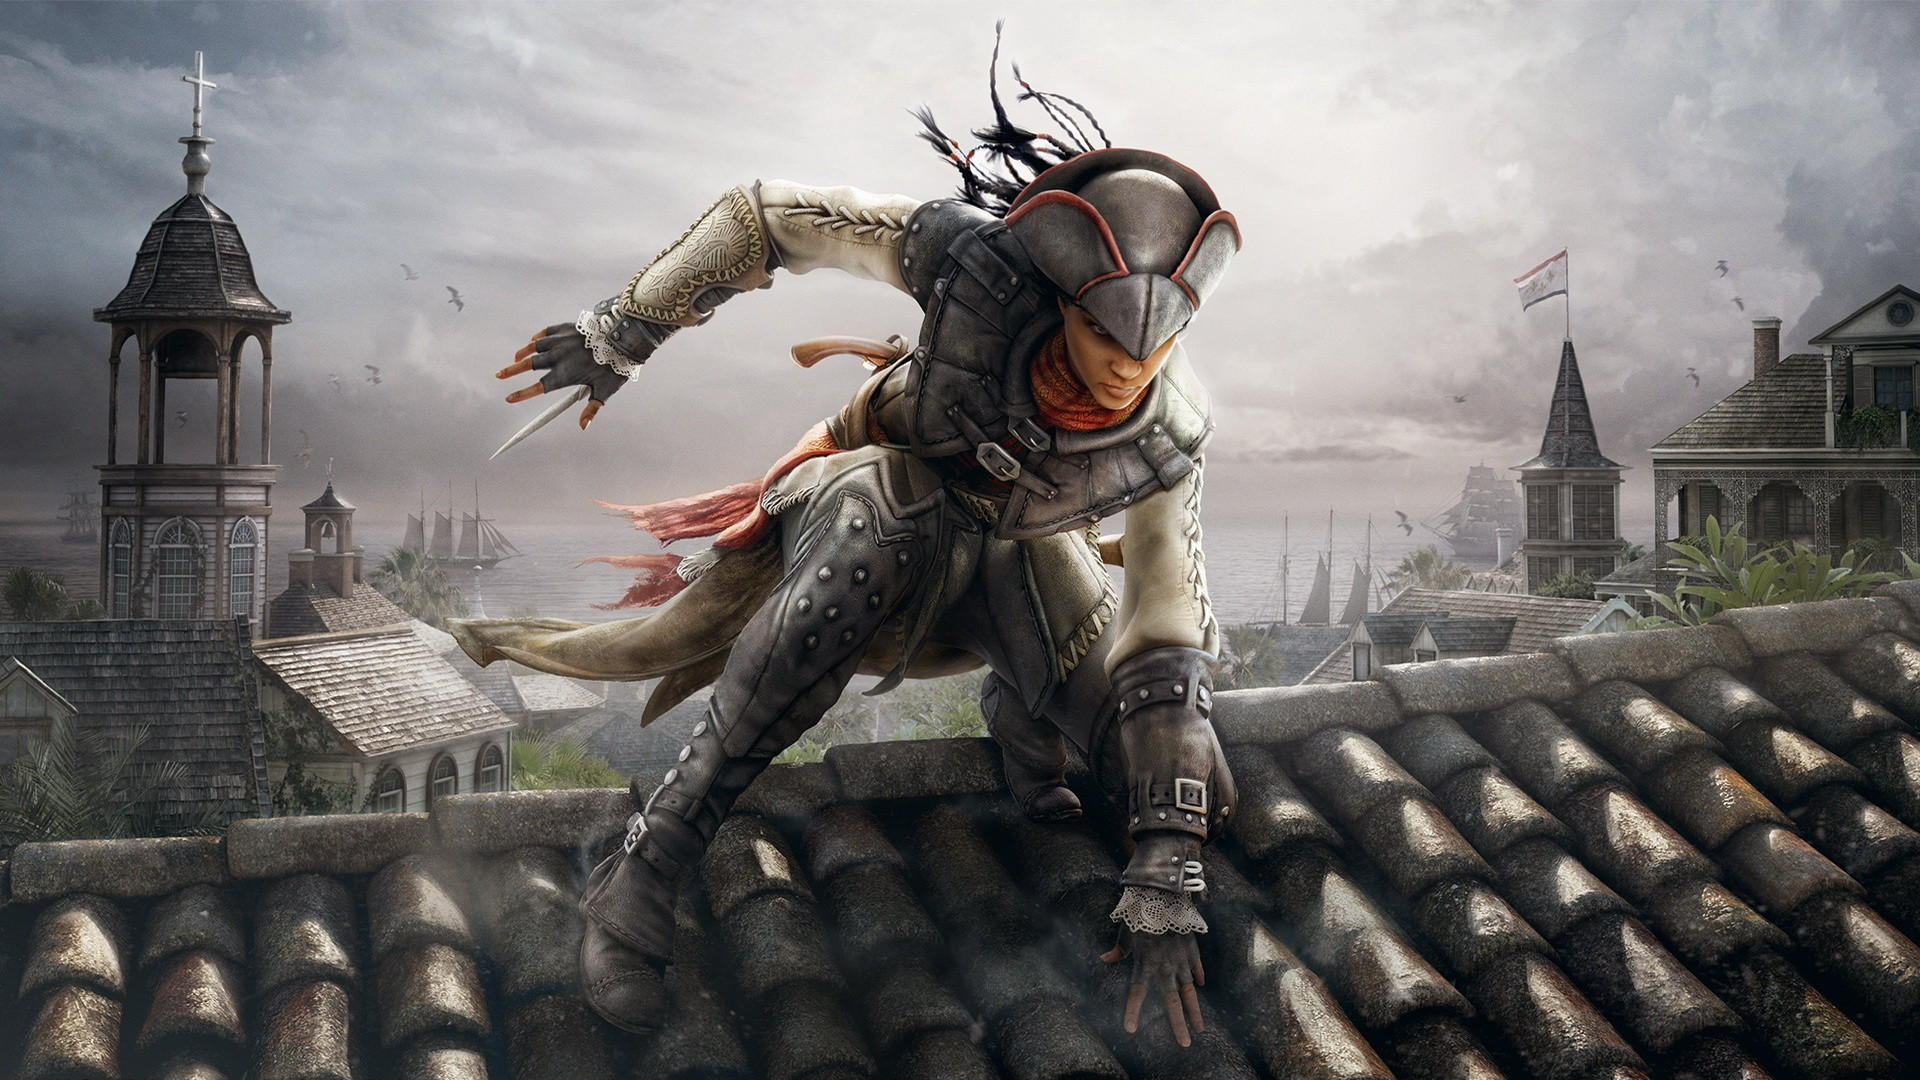 Assassins creed 3 wallpapers 76 images 1920x1200 fantasy art assassins creed 3 wallpapers hd desktop and mobile backgrounds voltagebd Choice Image